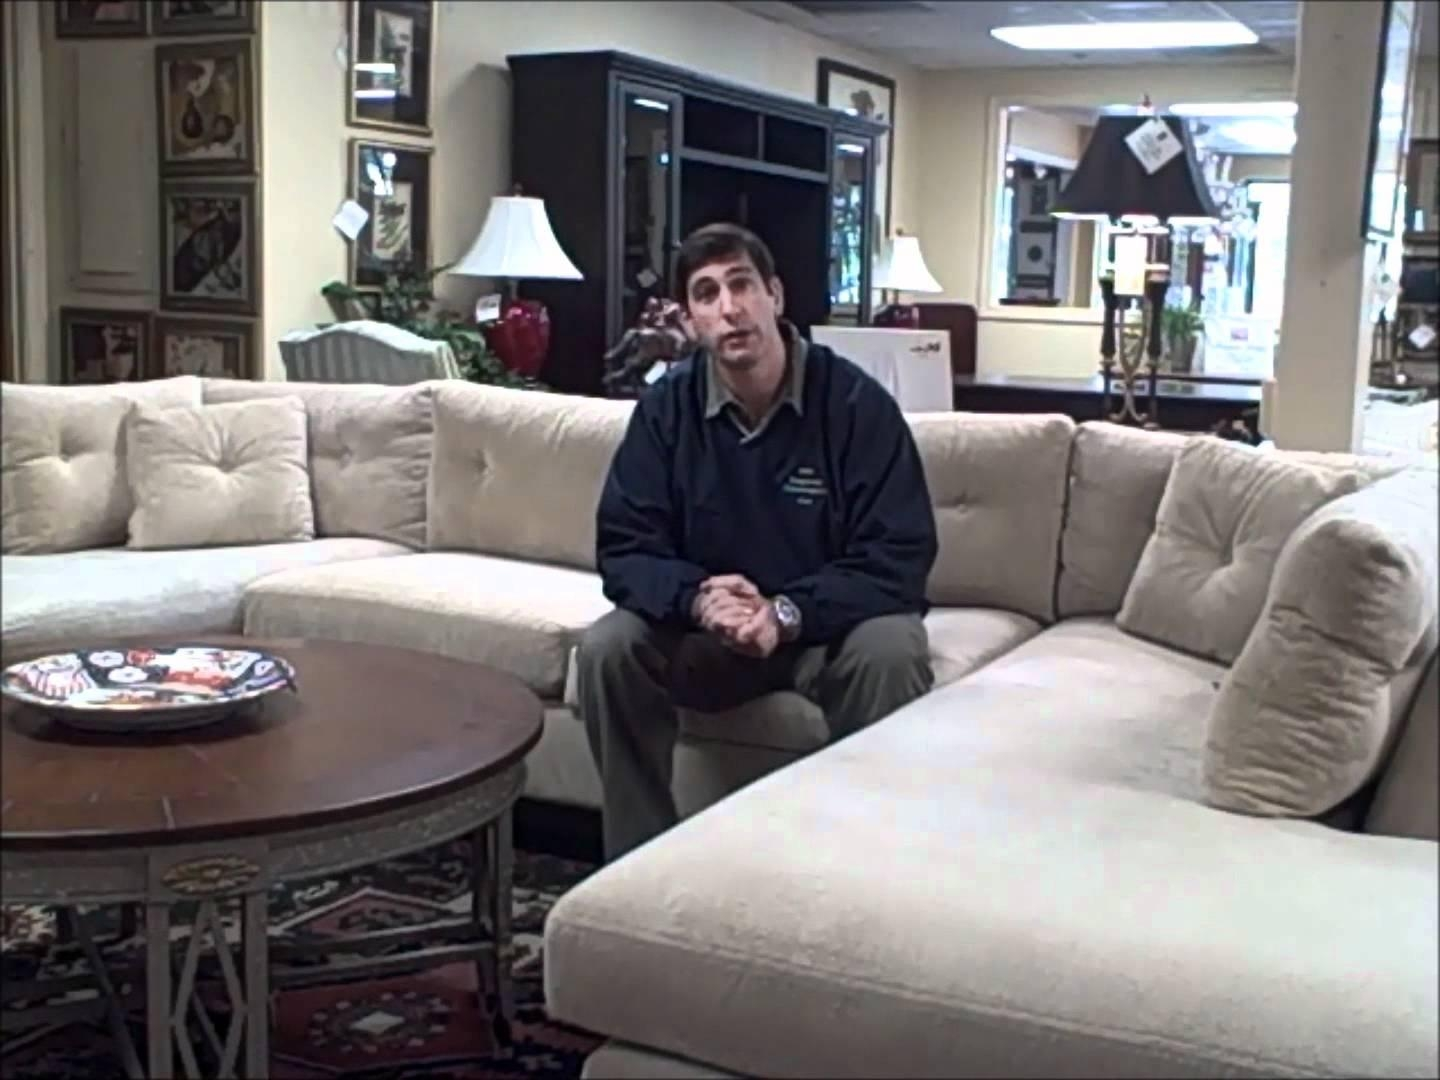 Arhaus Sectional Sofas And Sleeper Are Our Deals Of The Week 10 7 Intended For Arhaus Leather Sofas (View 12 of 20)